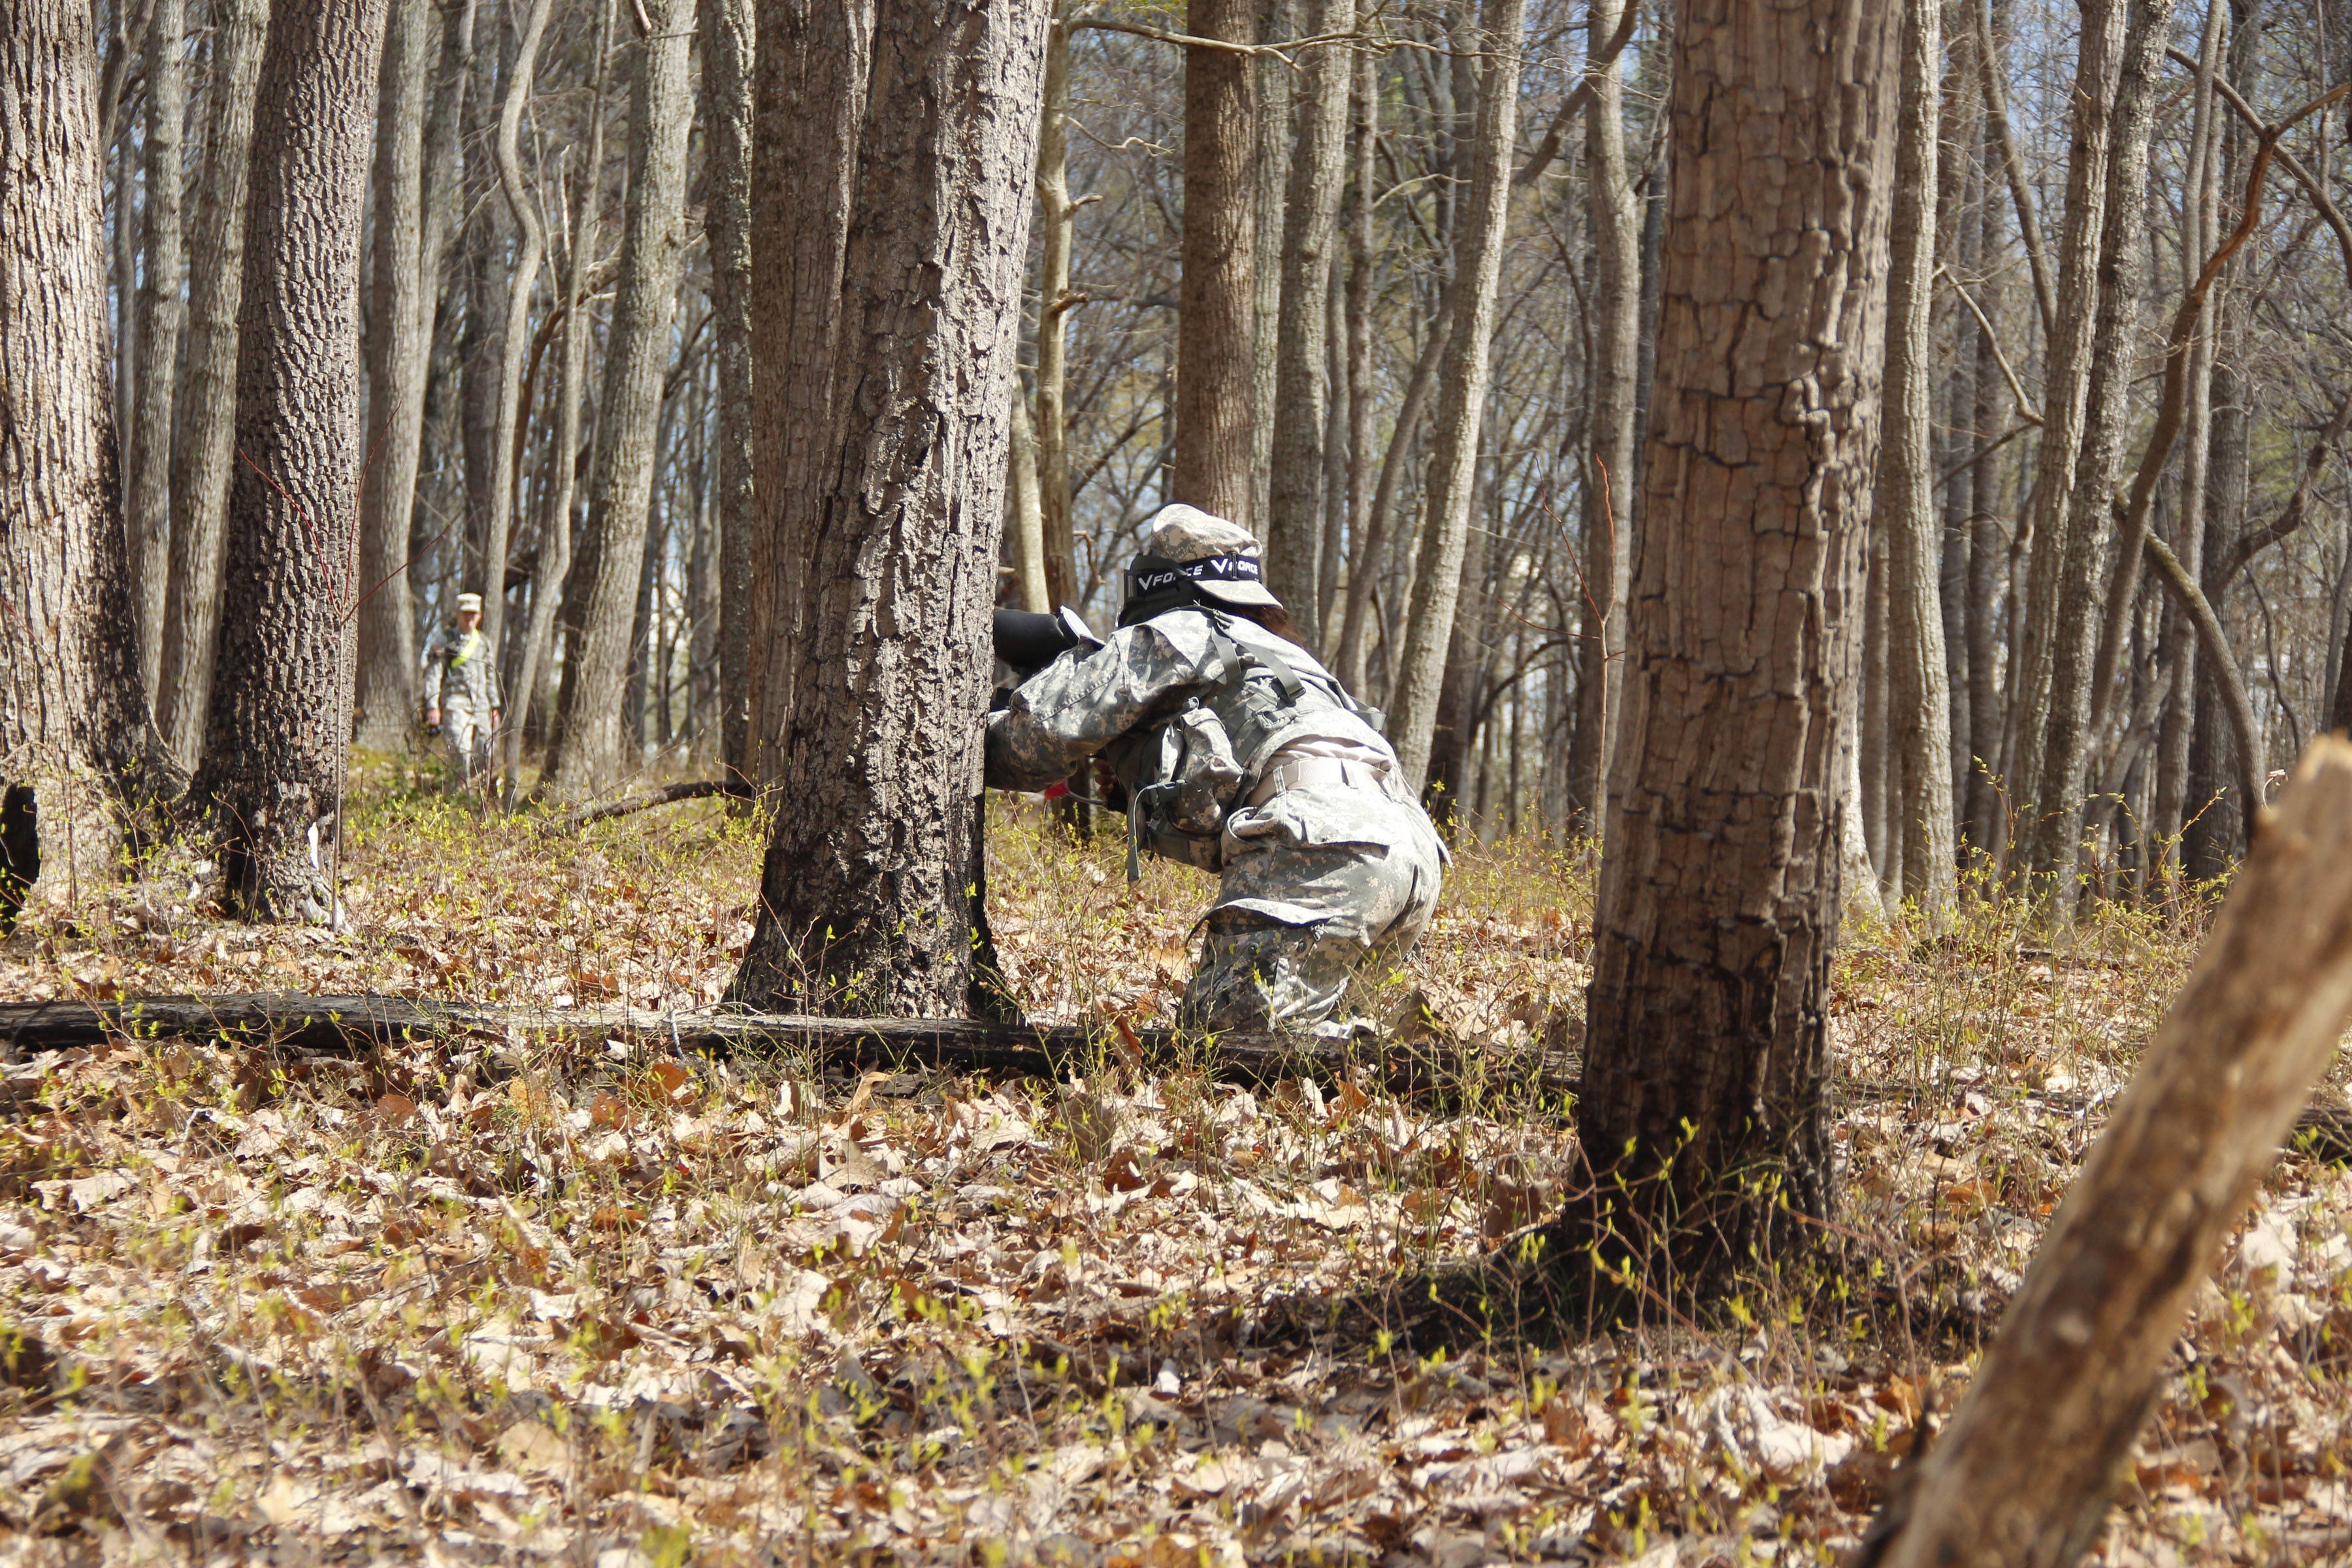 Patience and paintball: Mason cadets undergo leadership training at Fort AP Hill